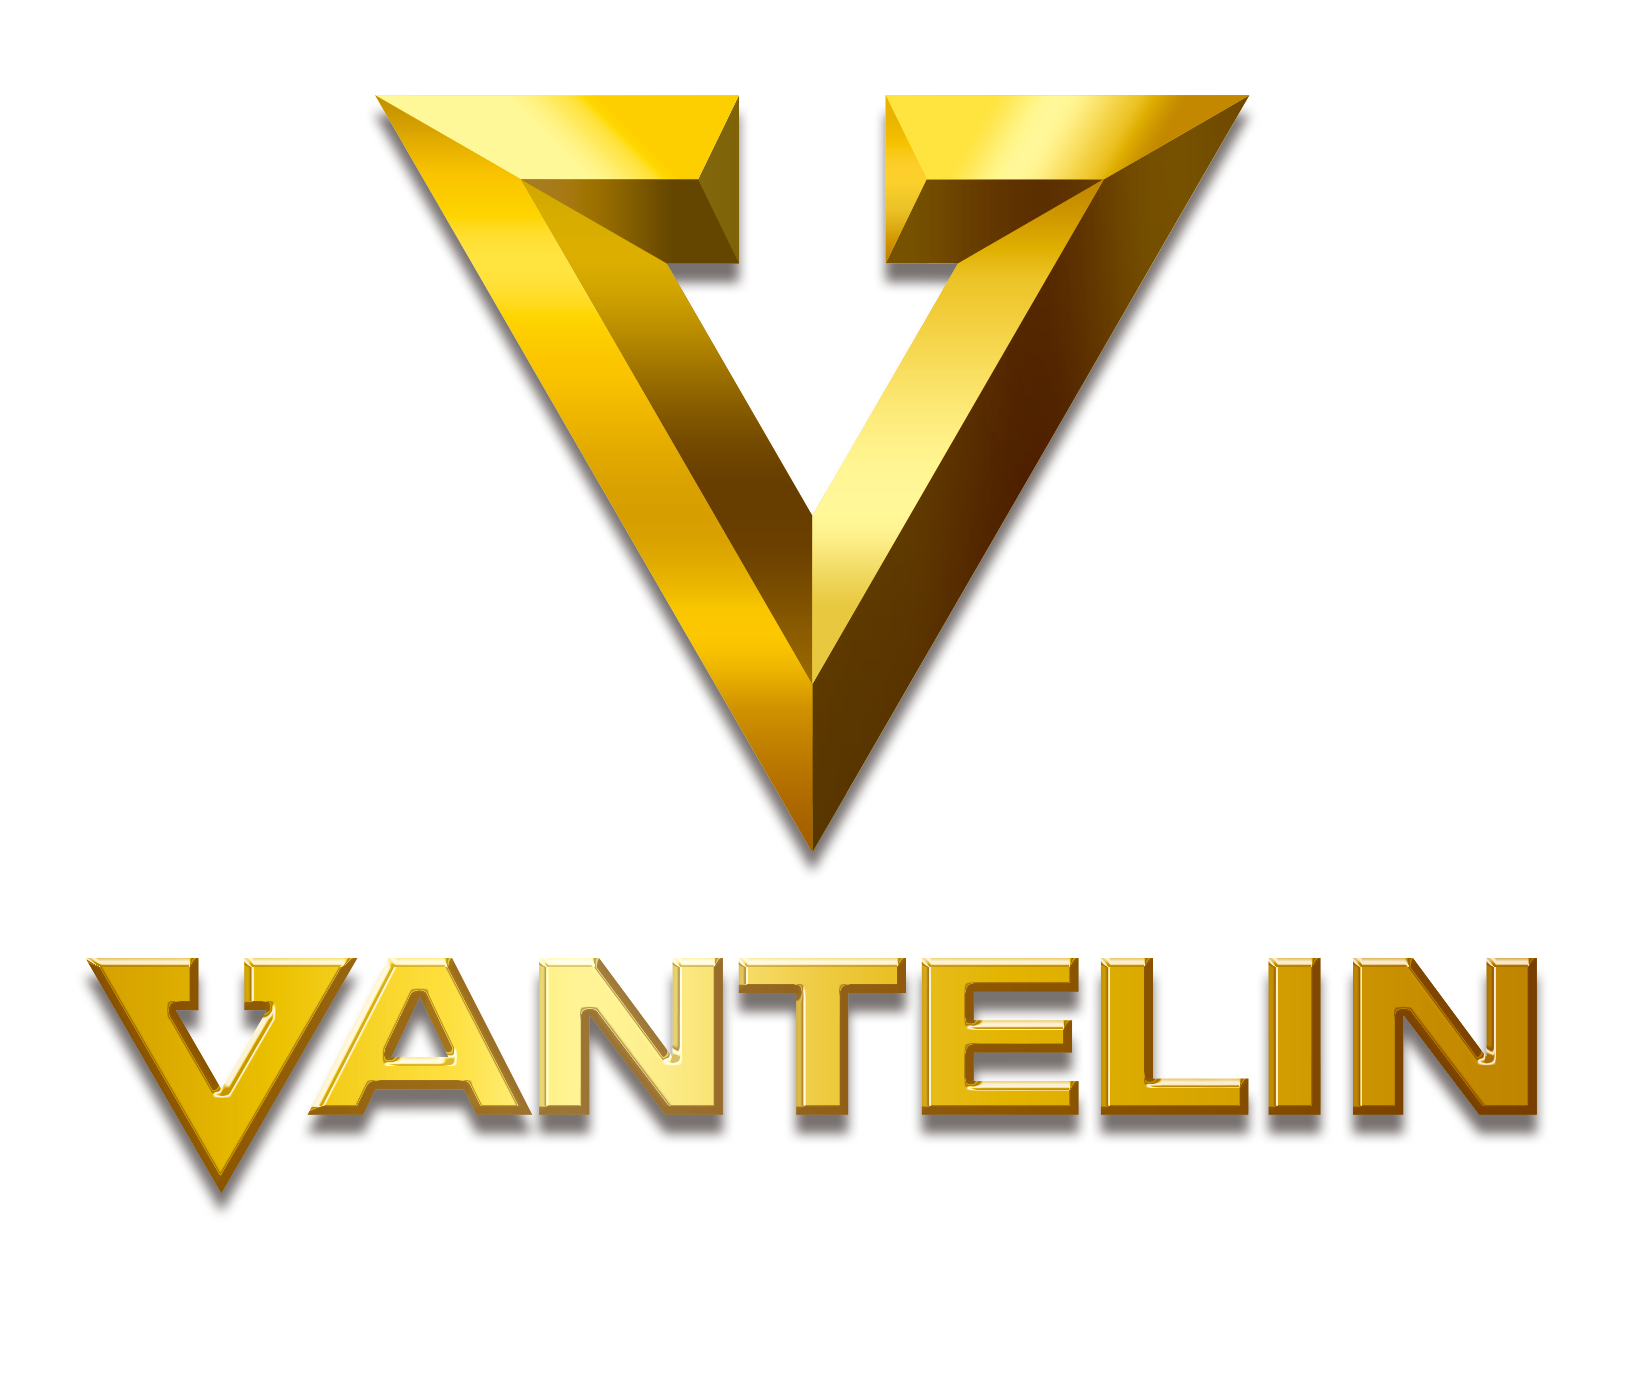 Vantelin-logo-for-website.png